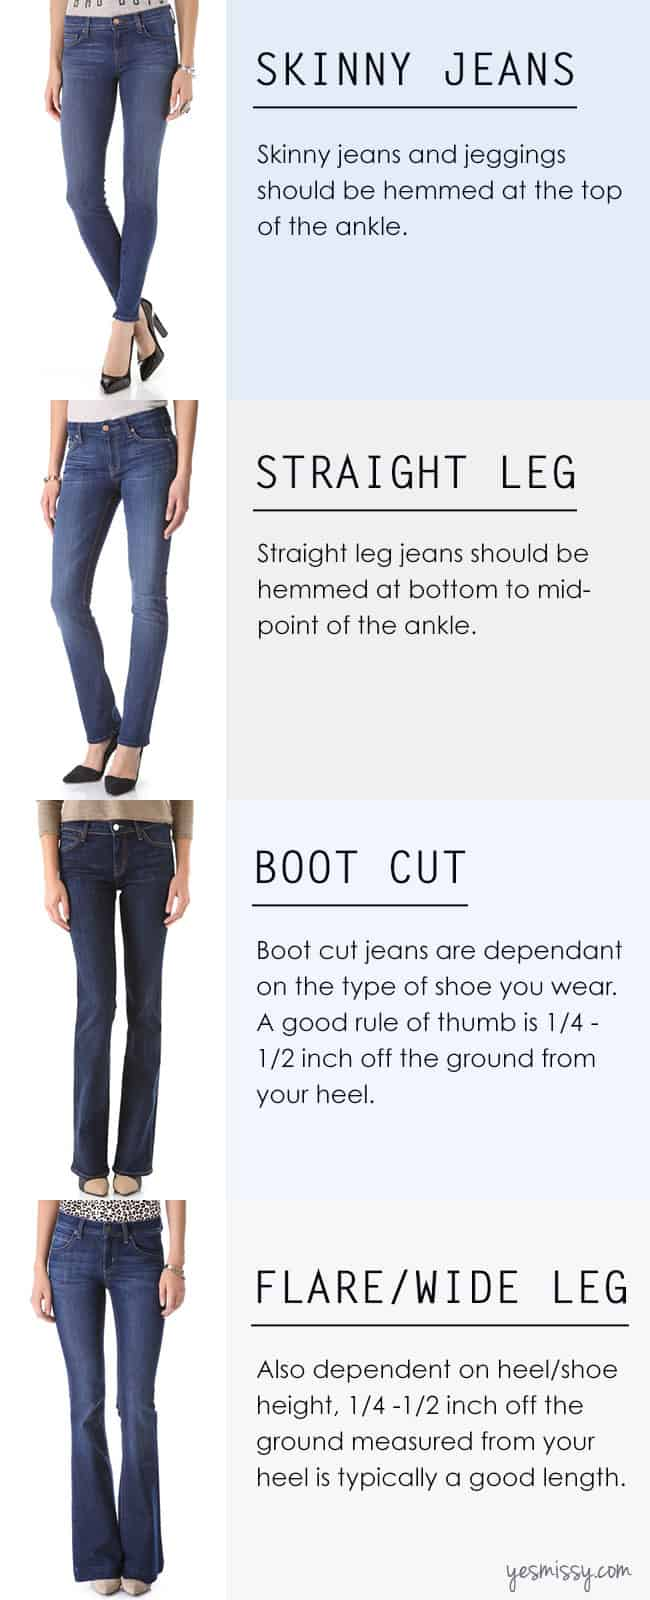 A Complete Guide on How to Hem Jeans - It all starts with knowing the proper length to hem your jeans according to the style of jeans you have.